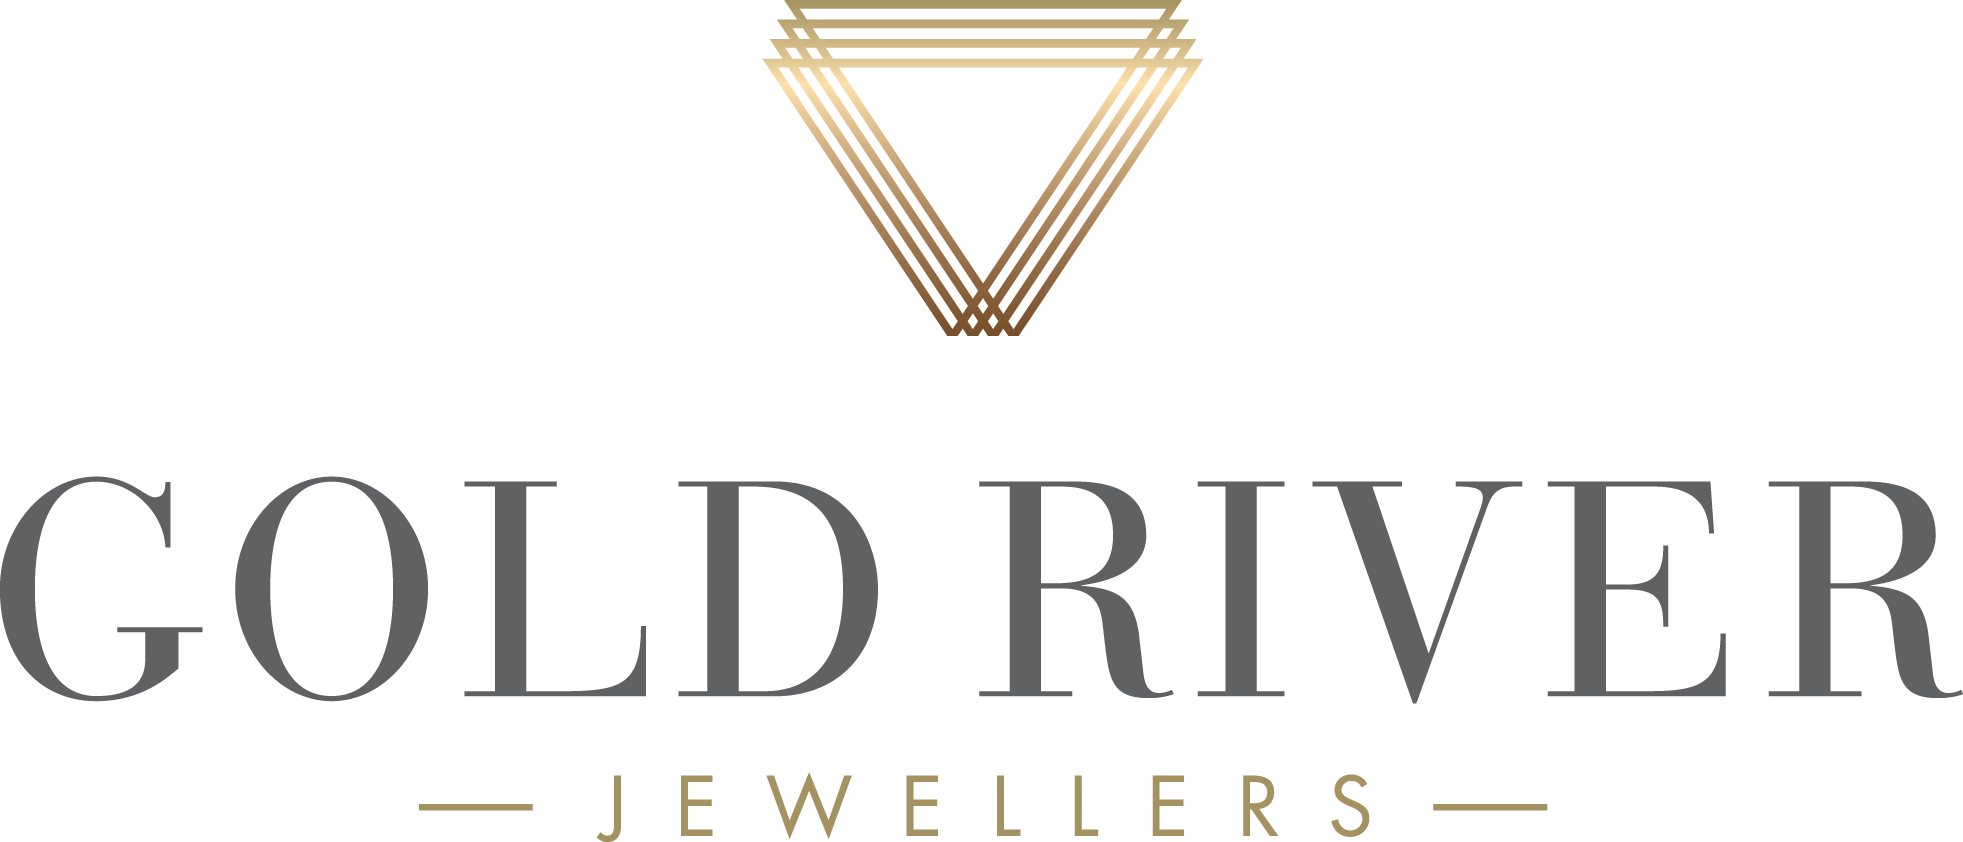 GOLD RIVER logo (colour on white).jpg